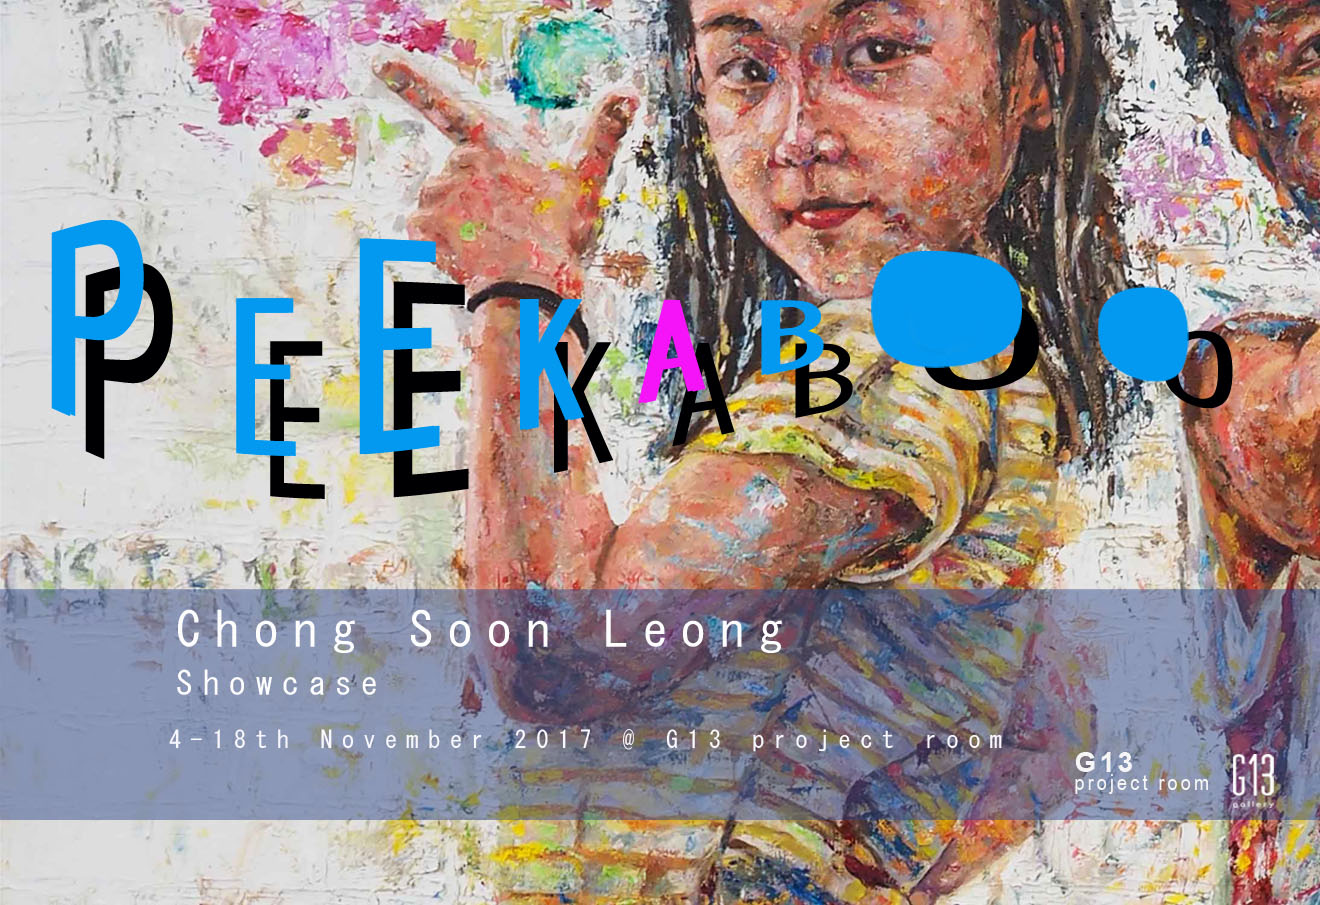 G13 Project Room :  PEEKABOO a showcase by Chong Soon Leong